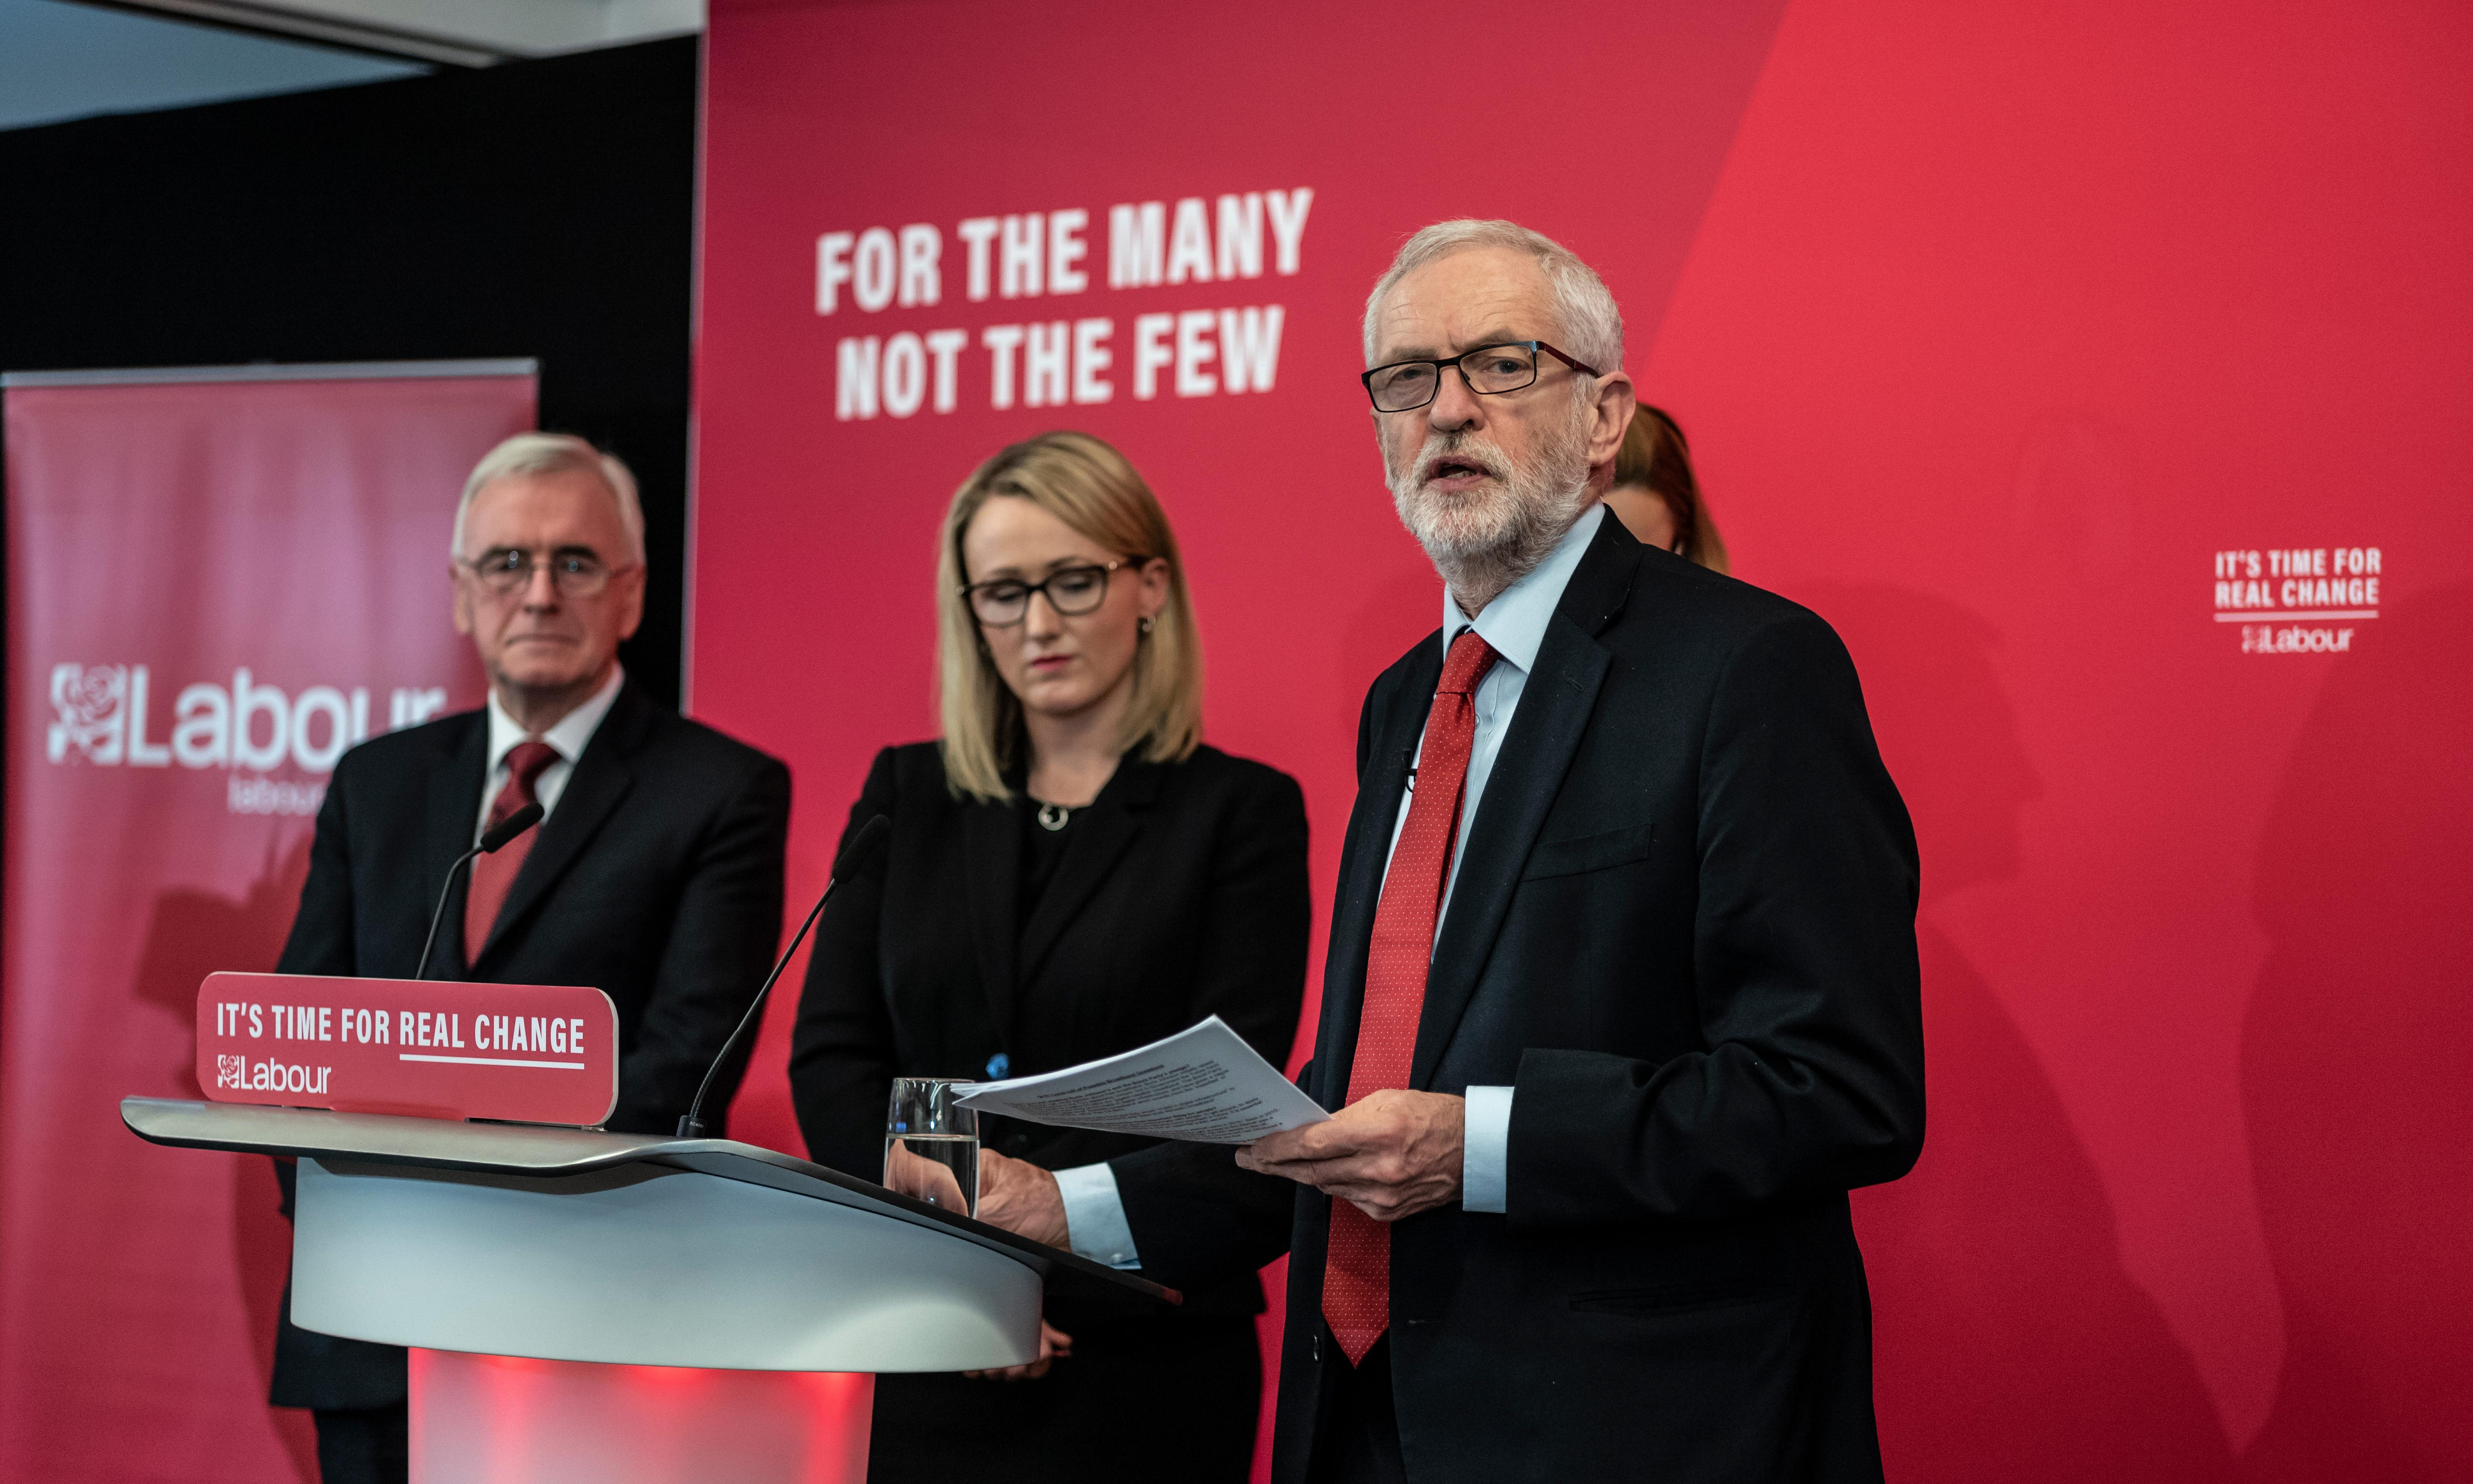 Labour defeat due to gimmicks and division, say members